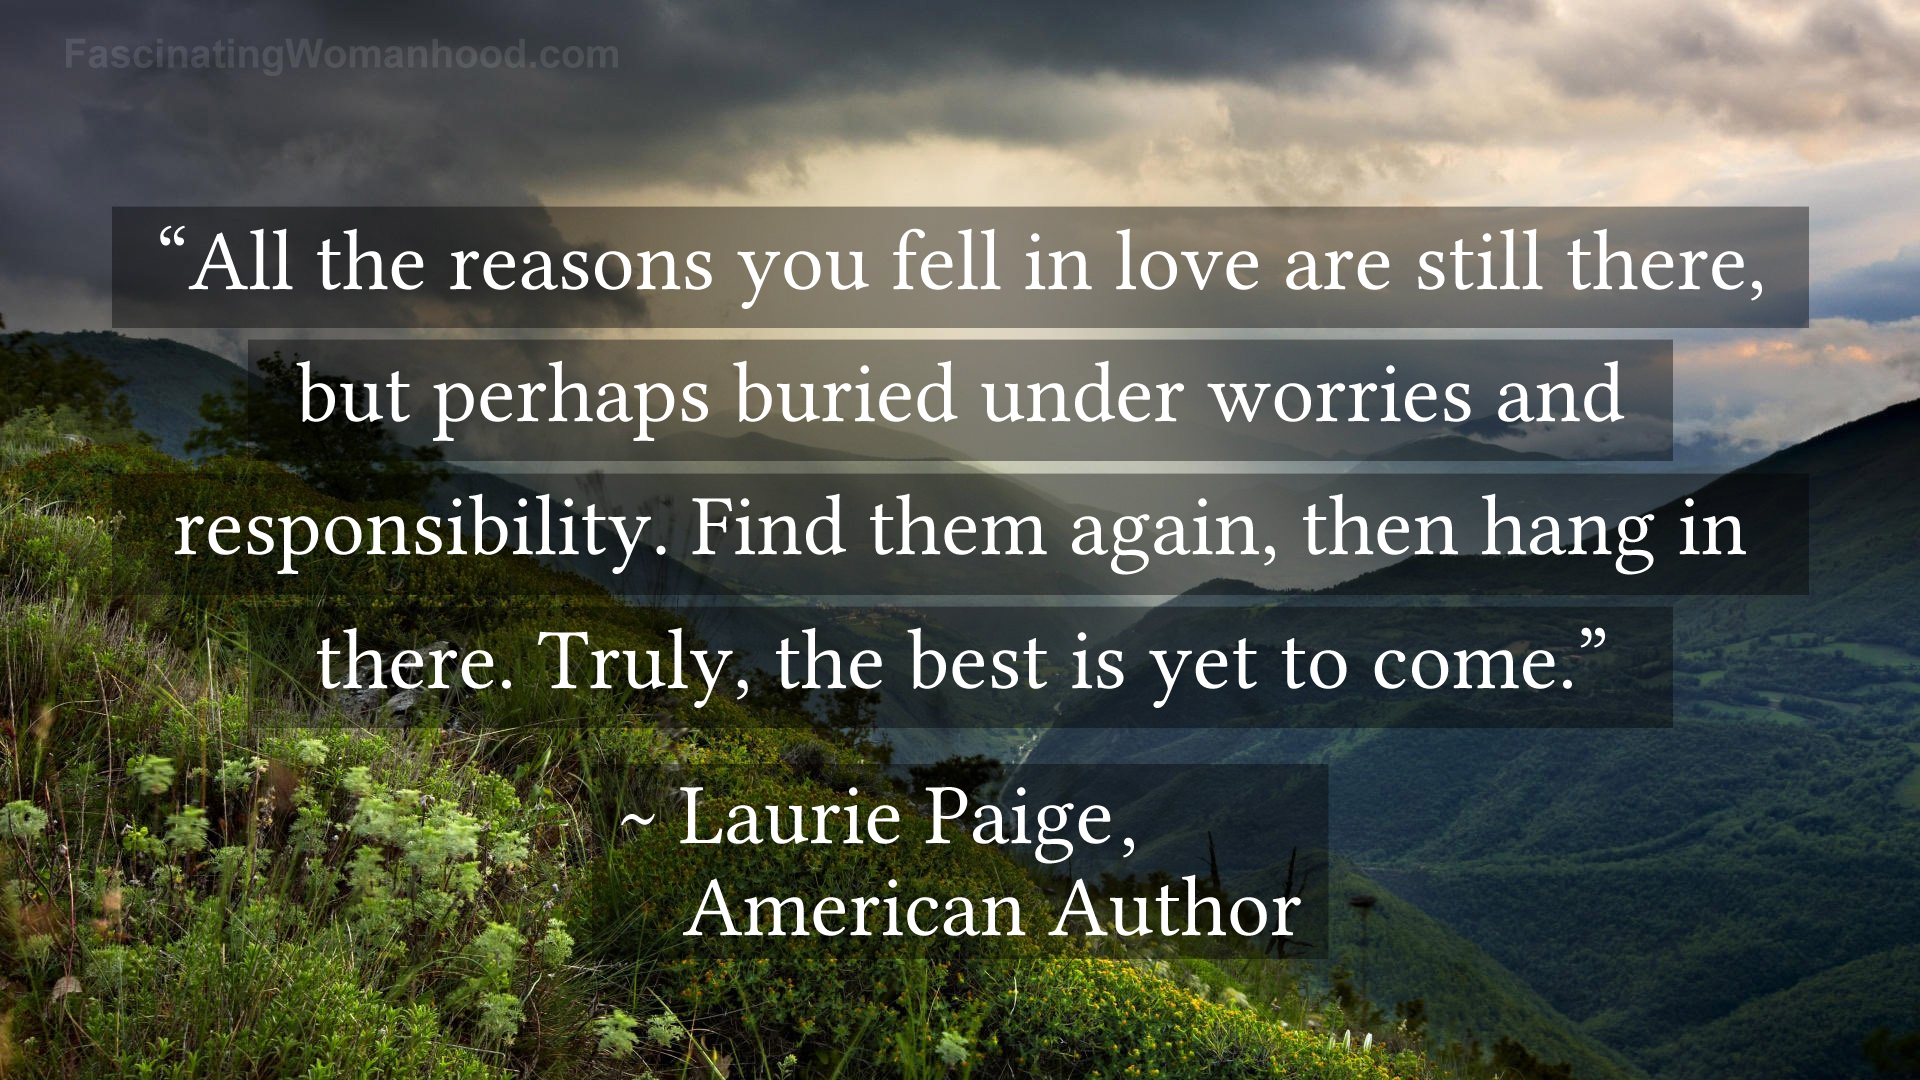 A Quote by Laurie Paige.jpg